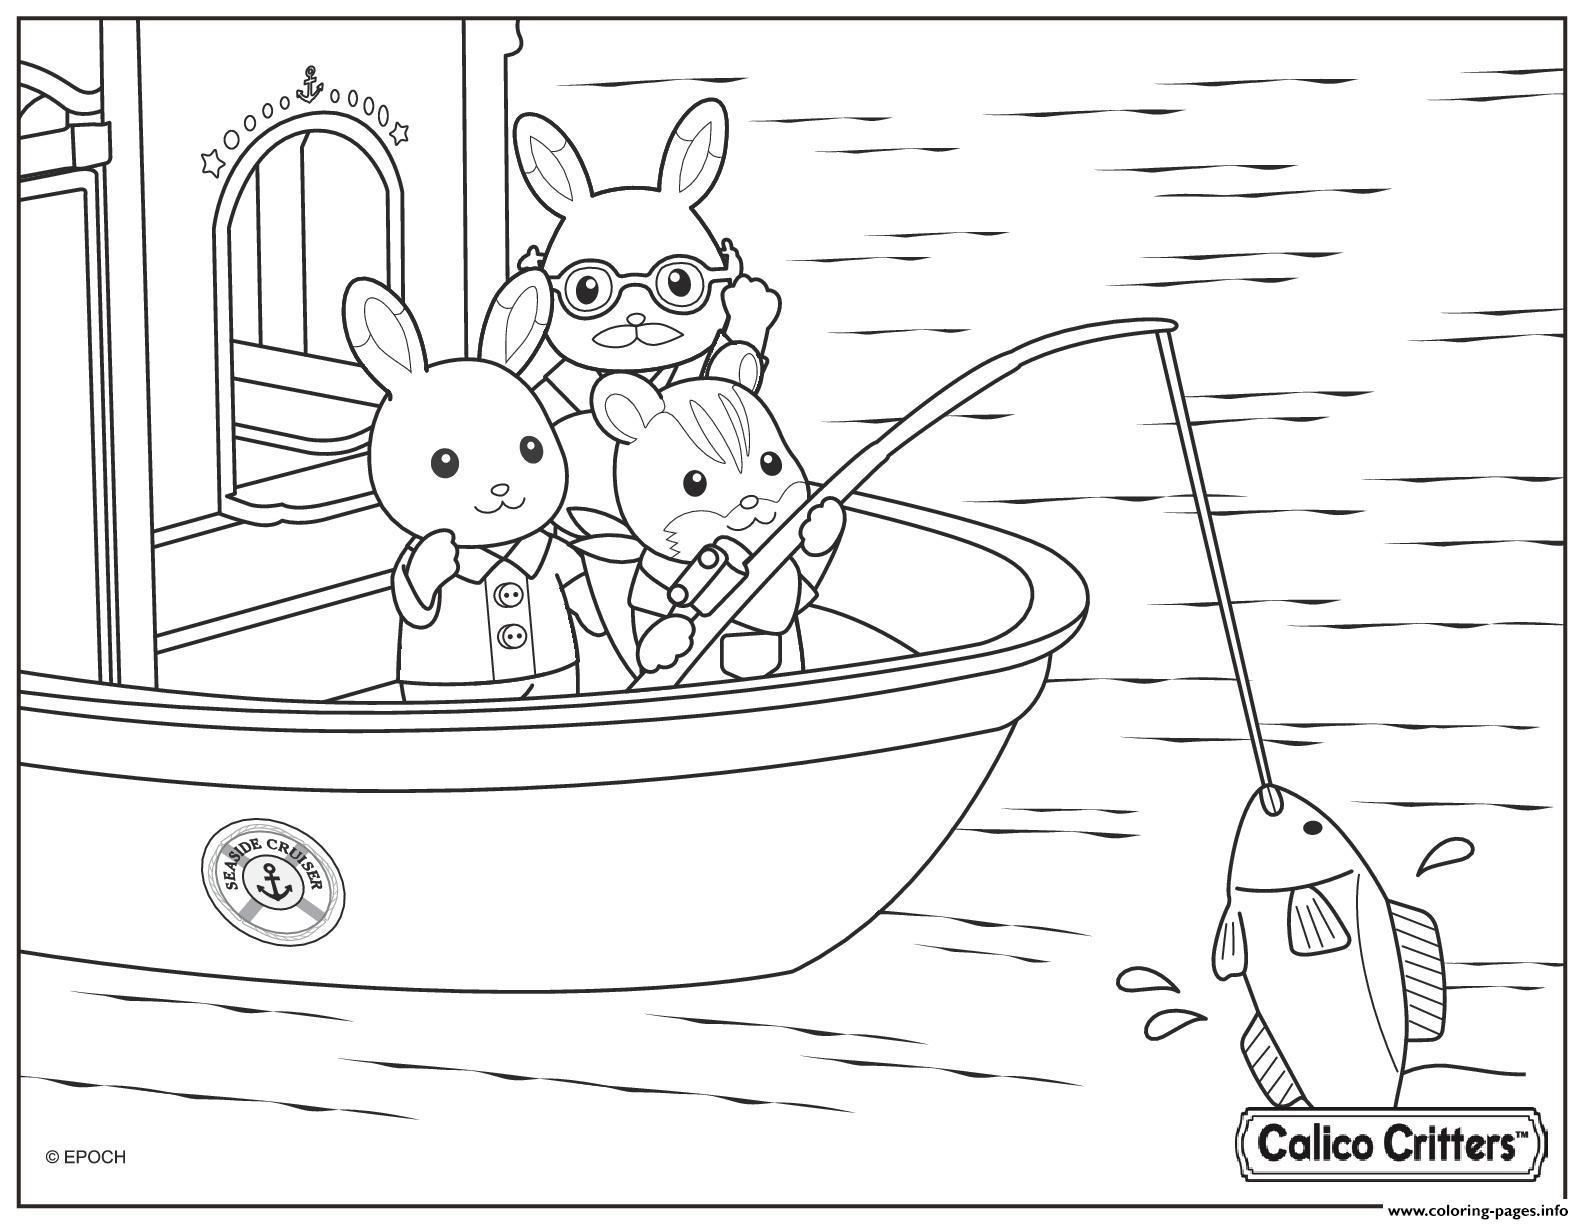 8 Coloring Book Info Page Coloring Books Coloring Pages Coloring For Kids